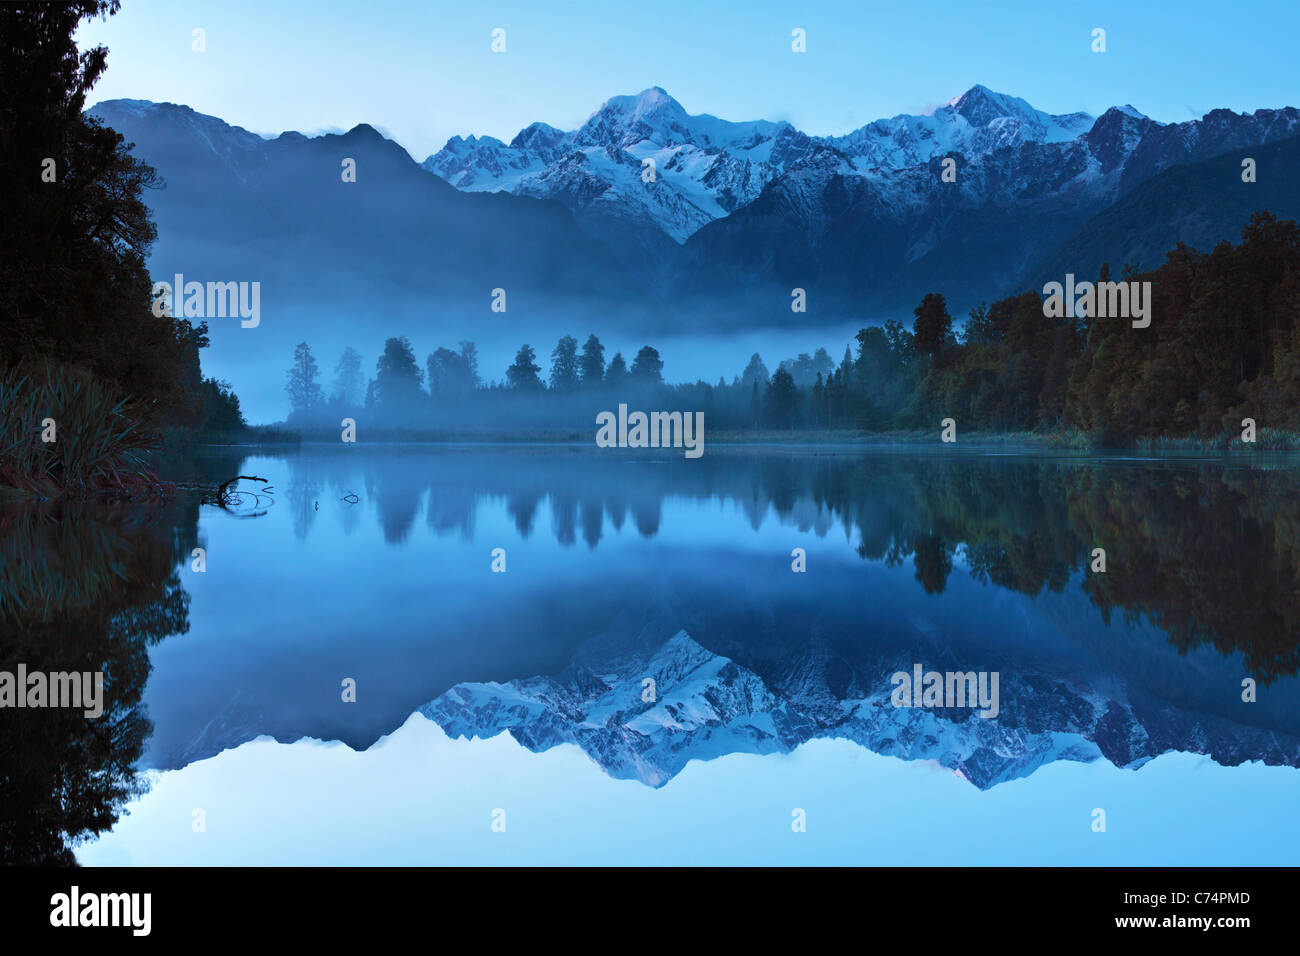 Reflection of Mt Cook (Aoraki) and Mt Tasman on Lake Matheson near Fox Glacier in New Zealand - Stock Image